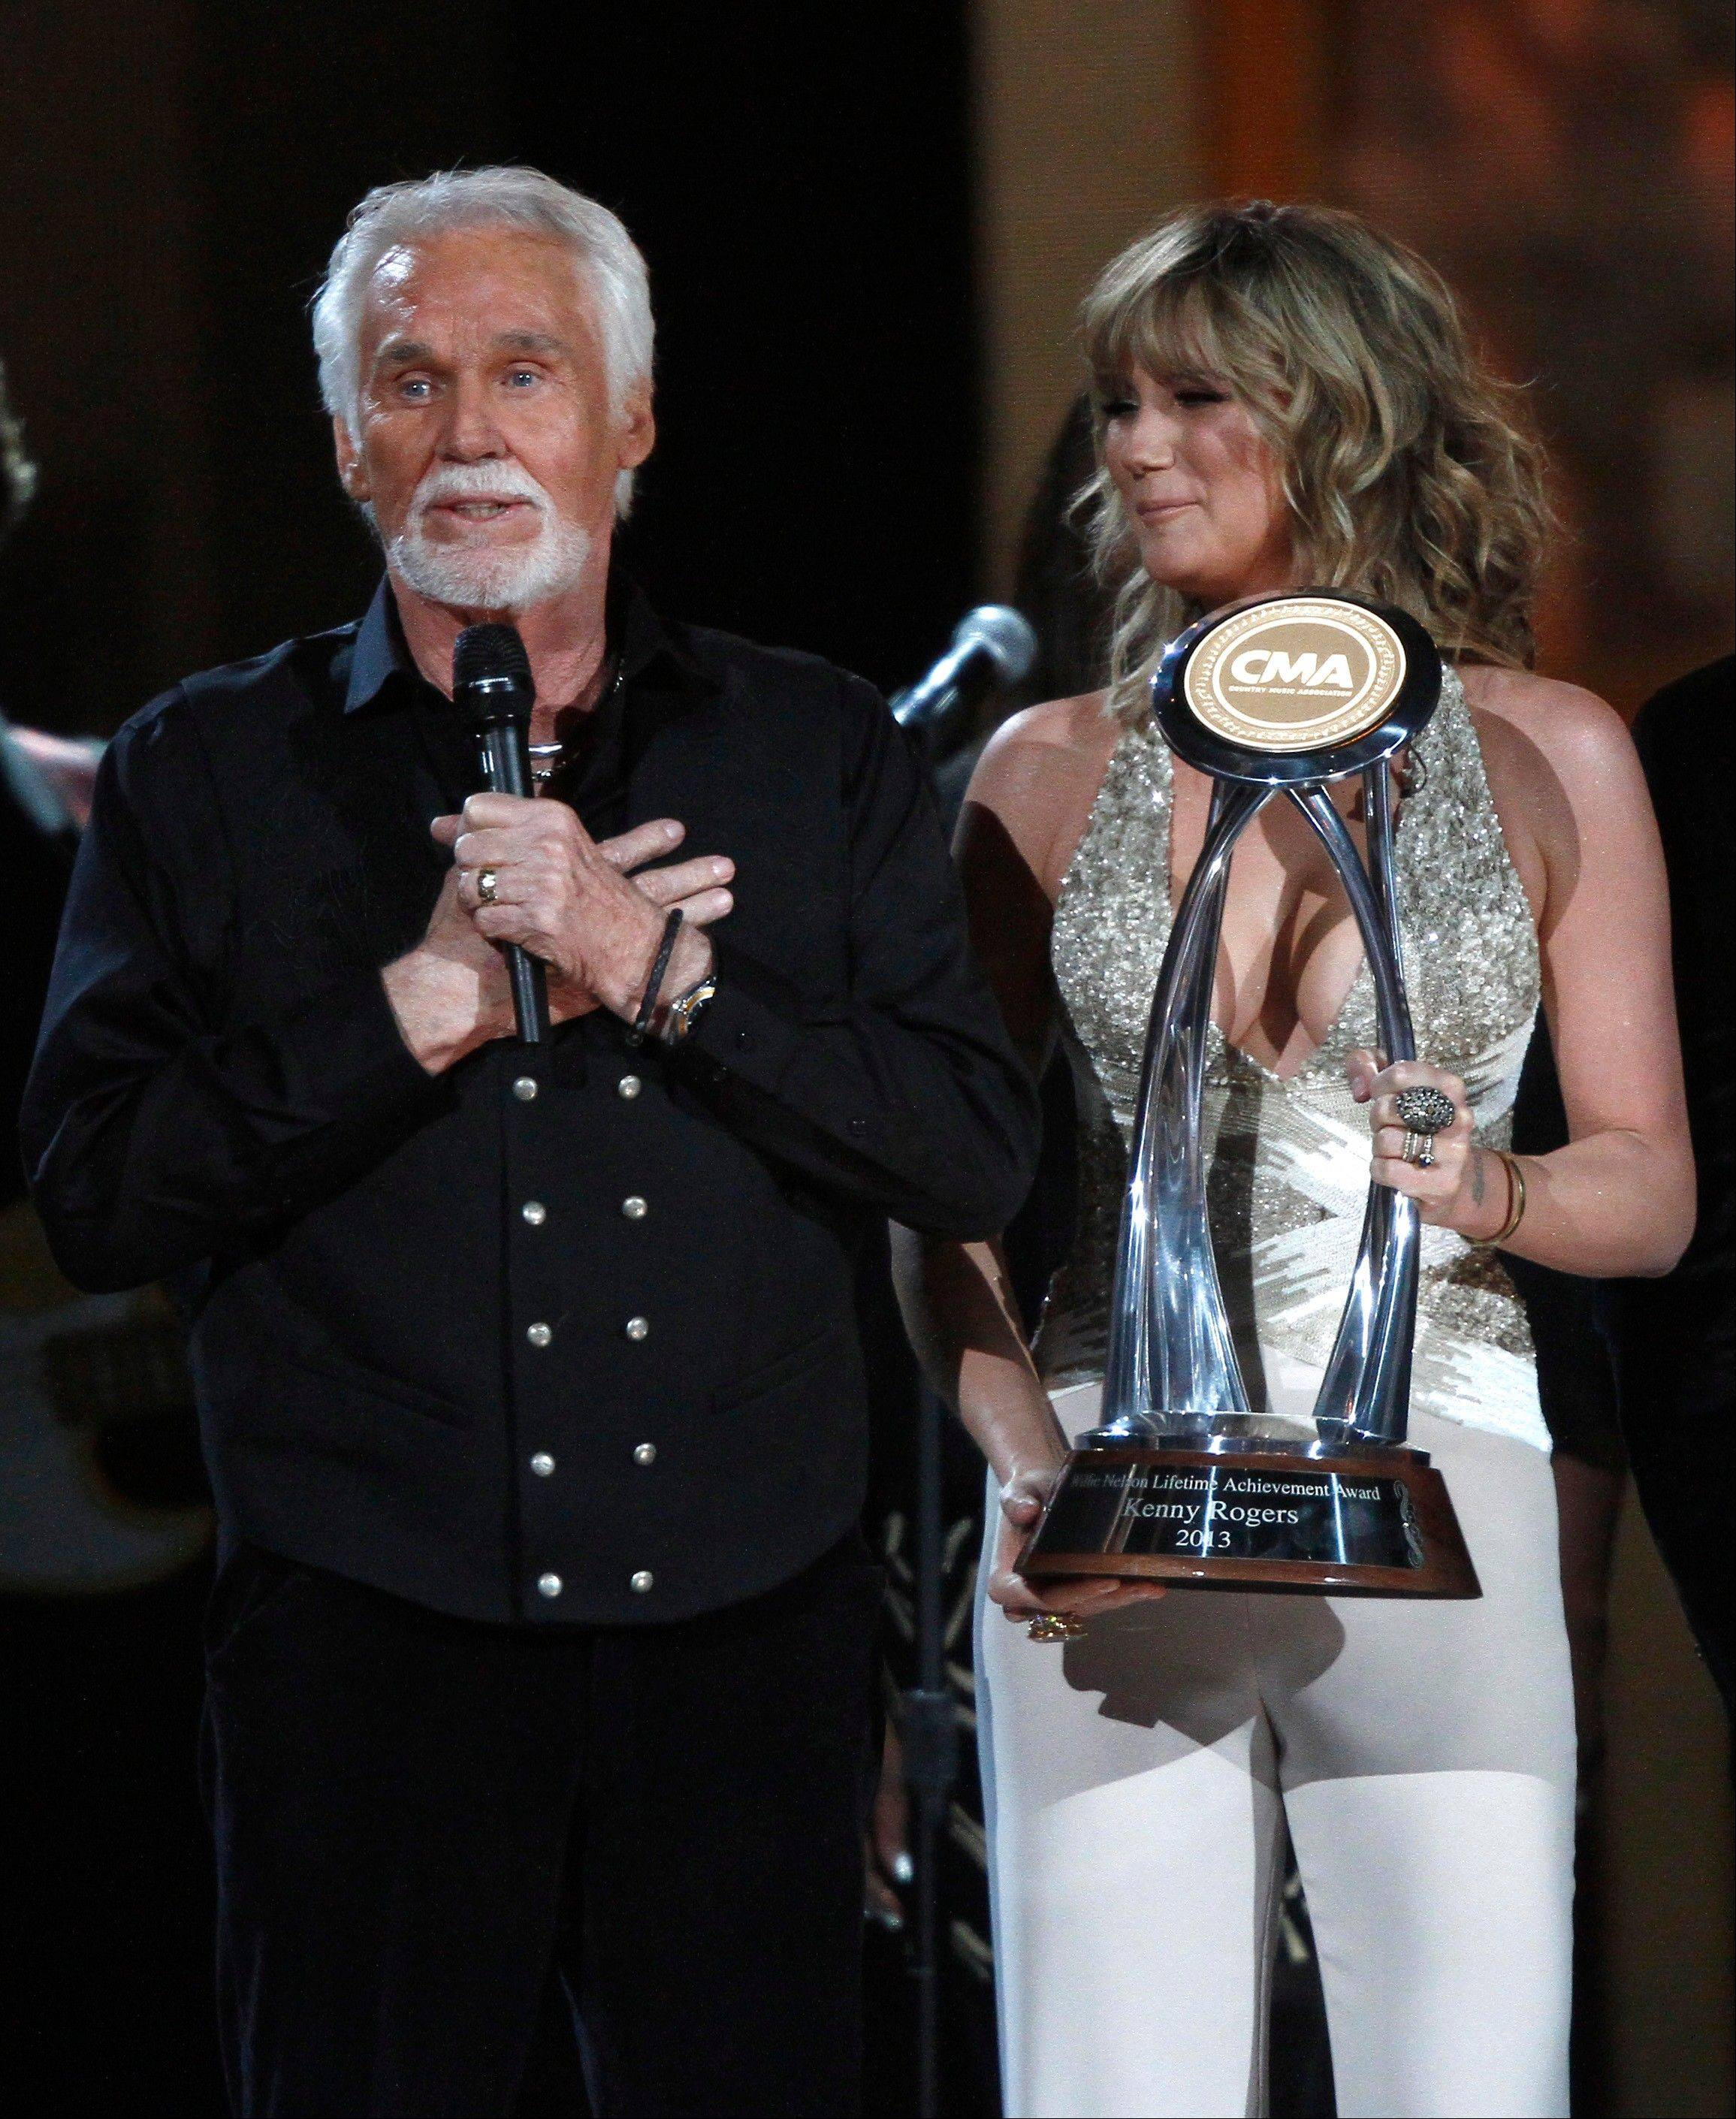 Kenny Rogers, left, accepts the Willie Nelson Lifetime Achievement Award at the 47th annual CMA Awards at Bridgestone Arena on Wednesday, Nov. 6, 2013, in Nashville, Tenn. In background right is Jennifer Nettles.